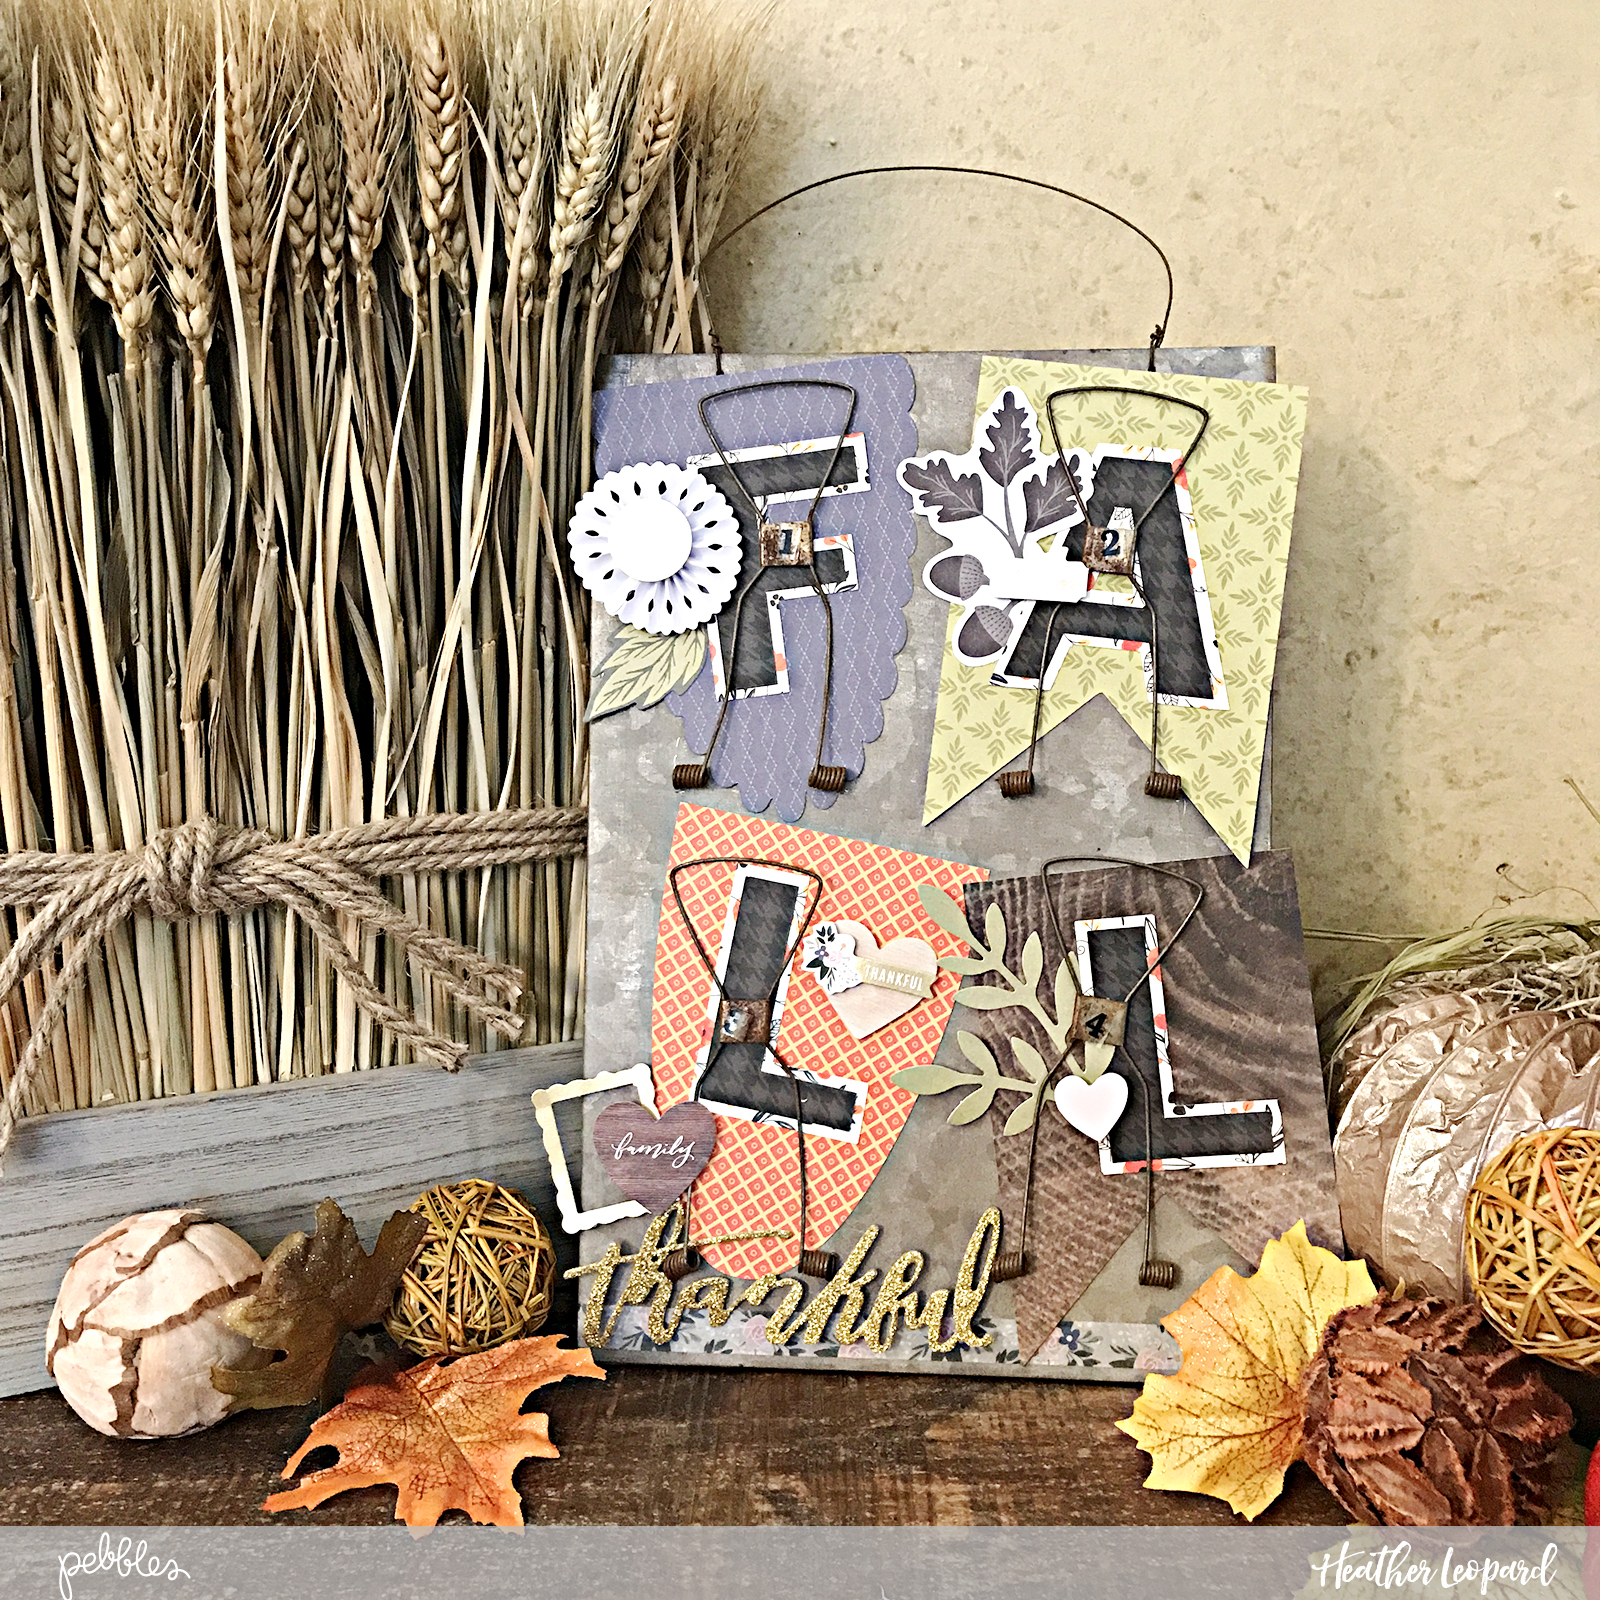 DIY Fall Home Decor by @heatherleopard using @PebblesInc #heartofhome and #midnighthaunting collections #DIY #fall #falldecor #madewithpebbles